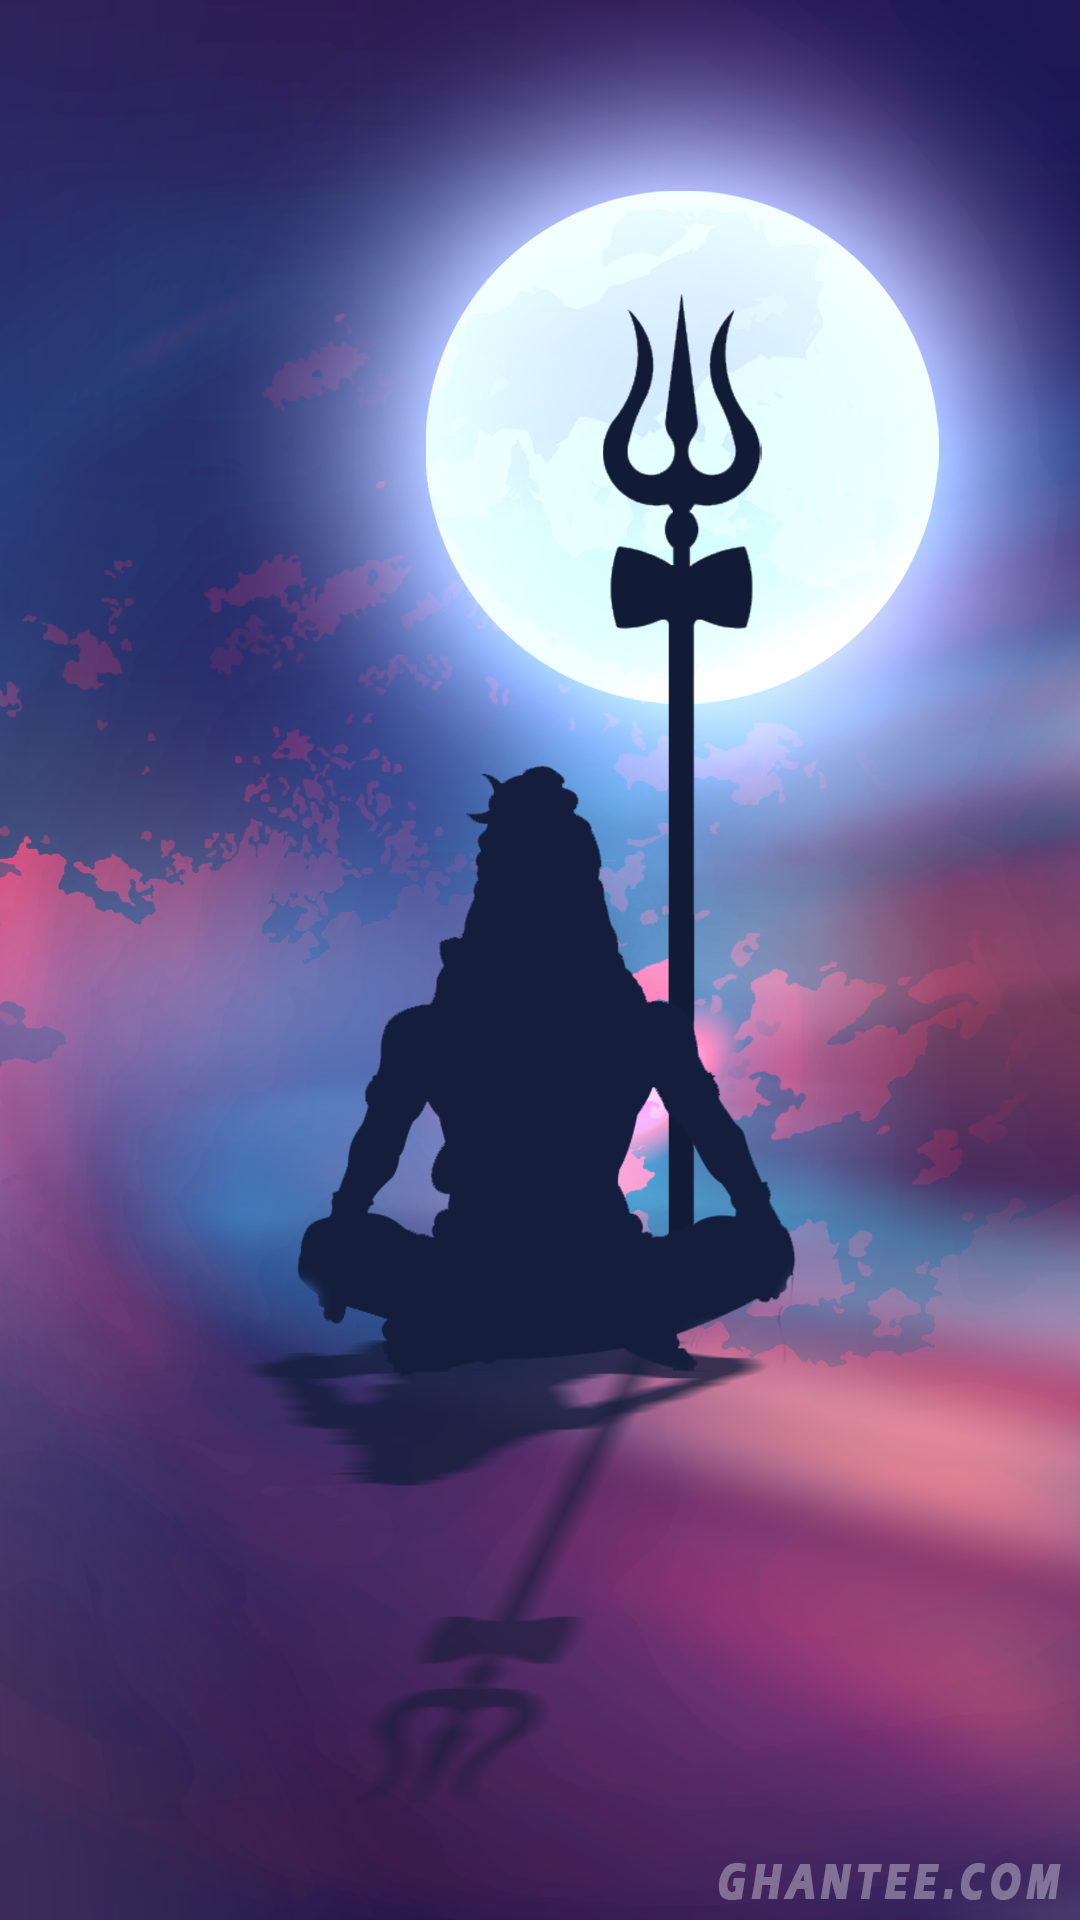 Lord Shiva Silhouette Phone Wallpaper 1080p Lord Shiva Painting Lord Shiva Statue Lord Shiva Hd Wallpaper